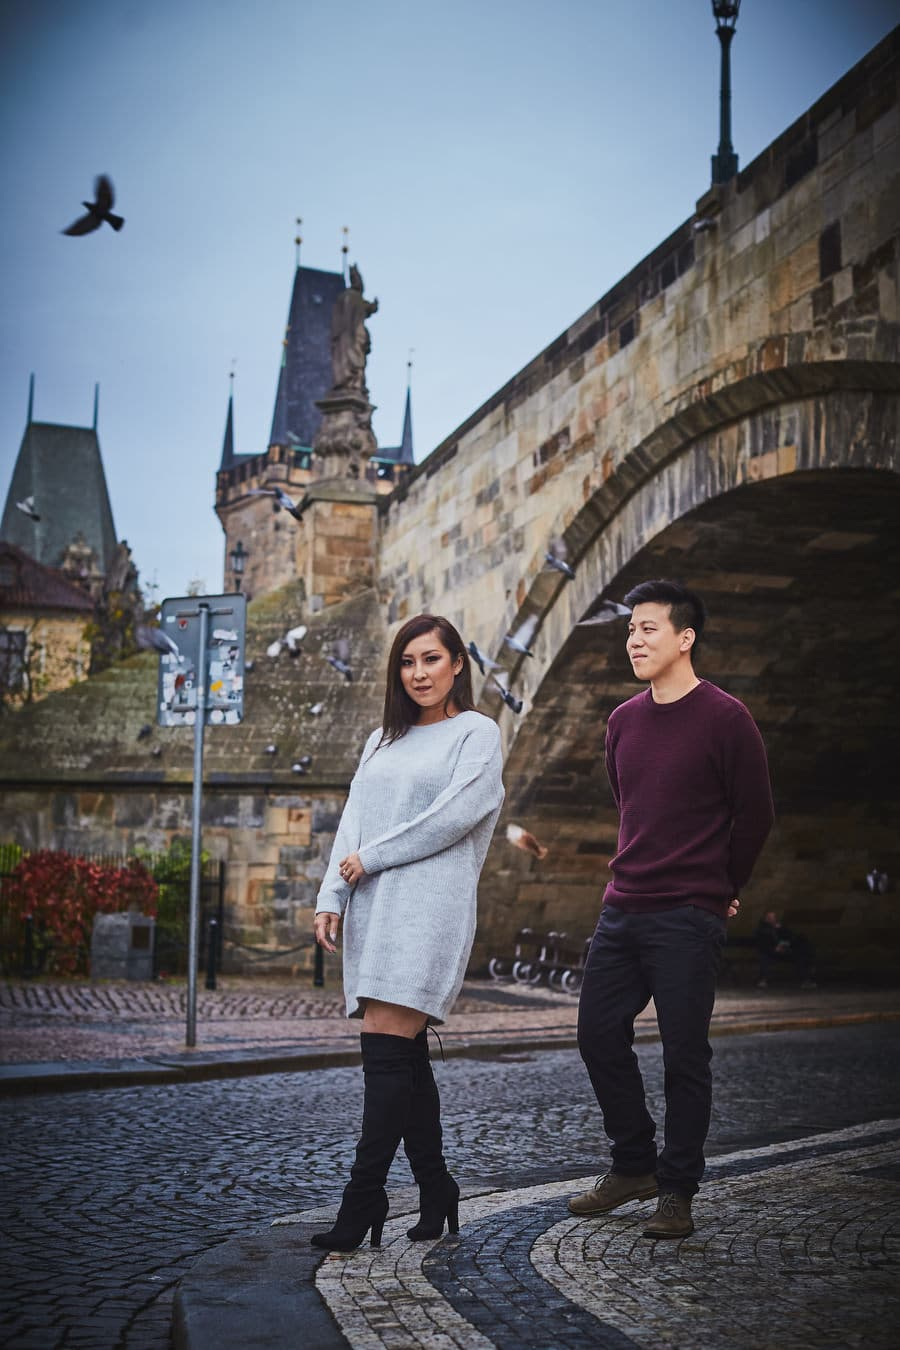 Prague Charles Bridge, stylish young couple posing, birds flying, blue sky